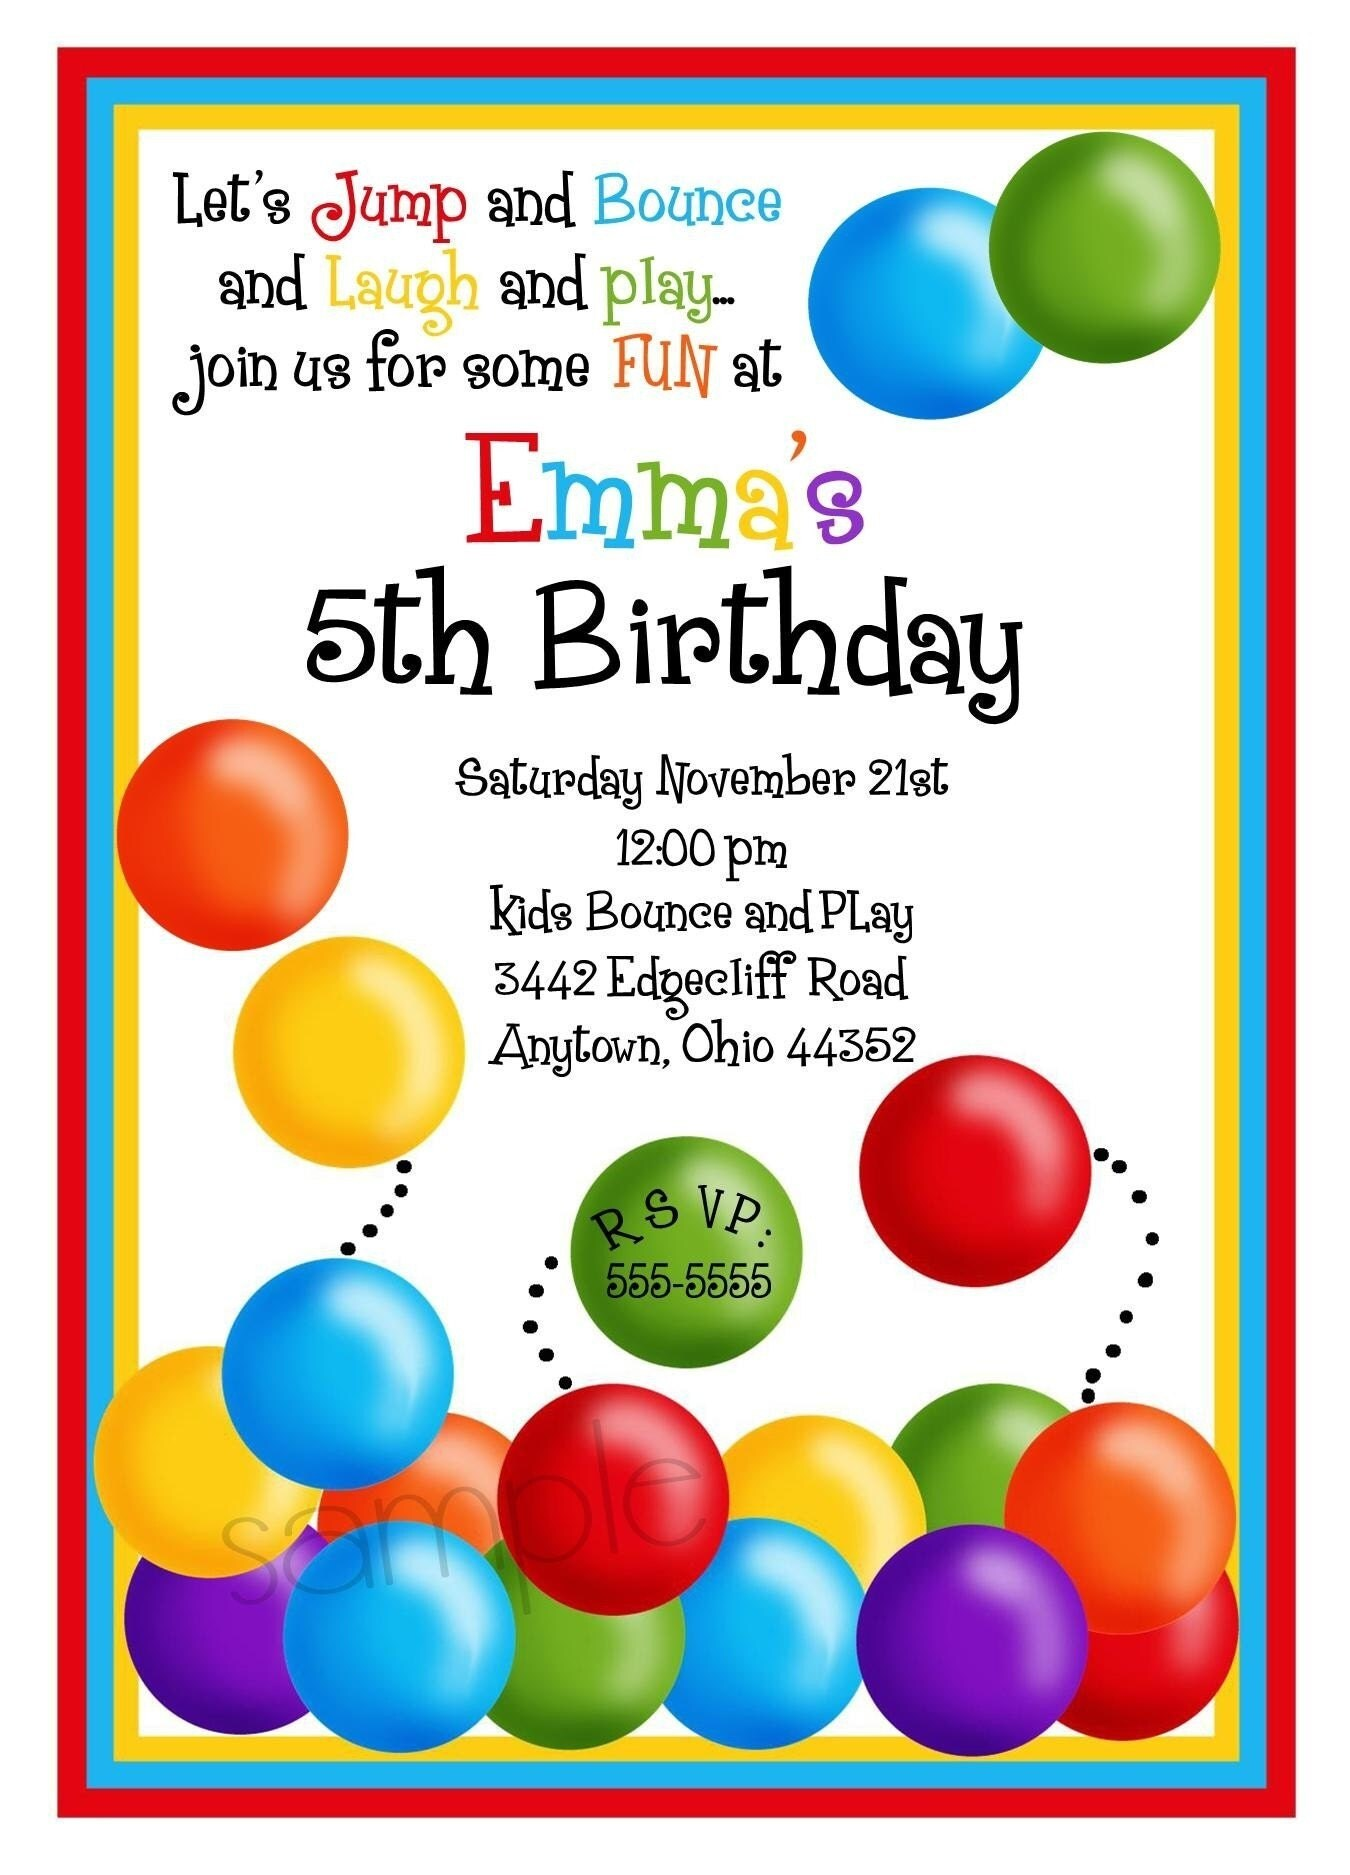 ball pit invitations ball pit birthday party bouncy house bouncy house invitations birthday party 128270zoom